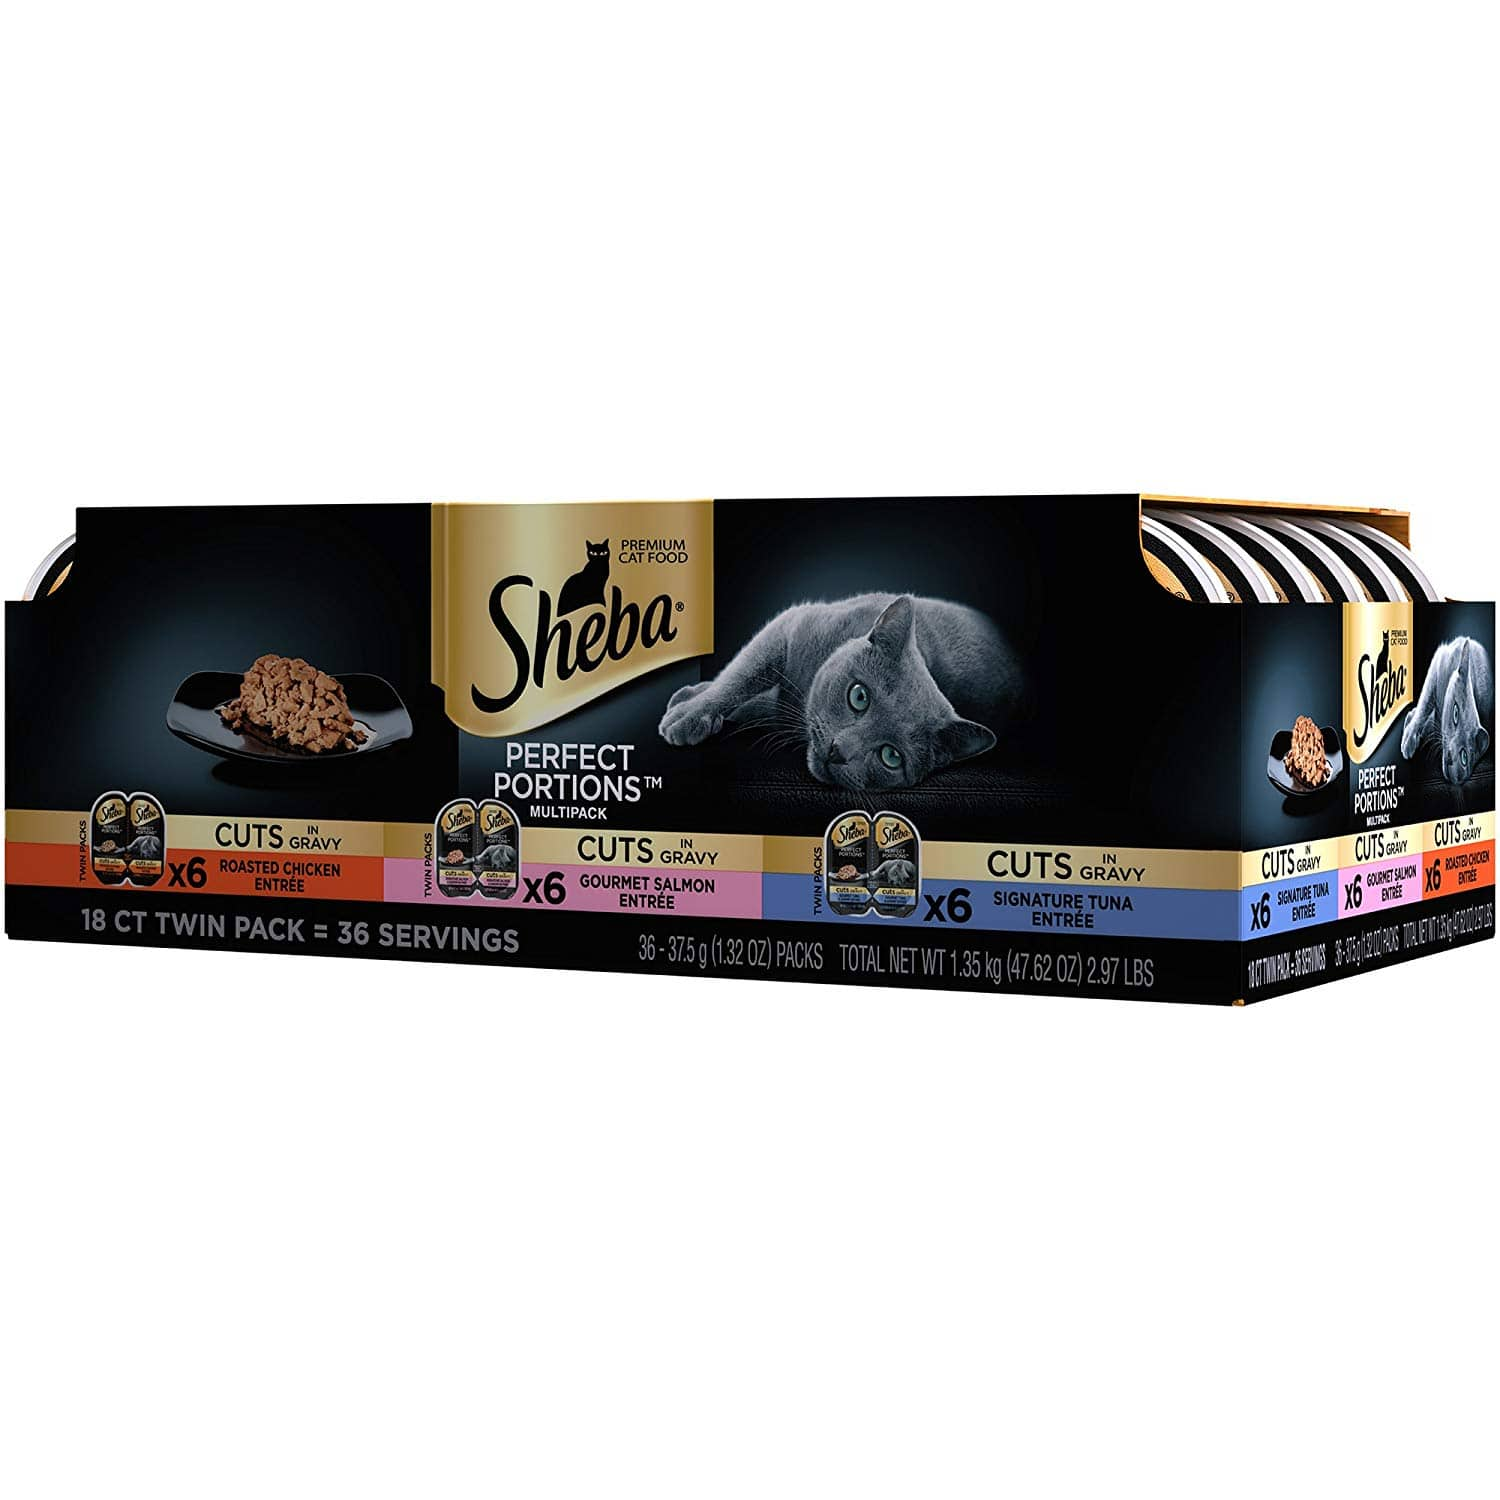 $14.40 FS Sheba Perfect Portions Cuts Cat Food 36ct - Contains (2) Multipacks Of (18) 2.6-Oz. Twin Packs 72 servings! - Flavor Name: Chicken, Tuna, Salmon ONLY